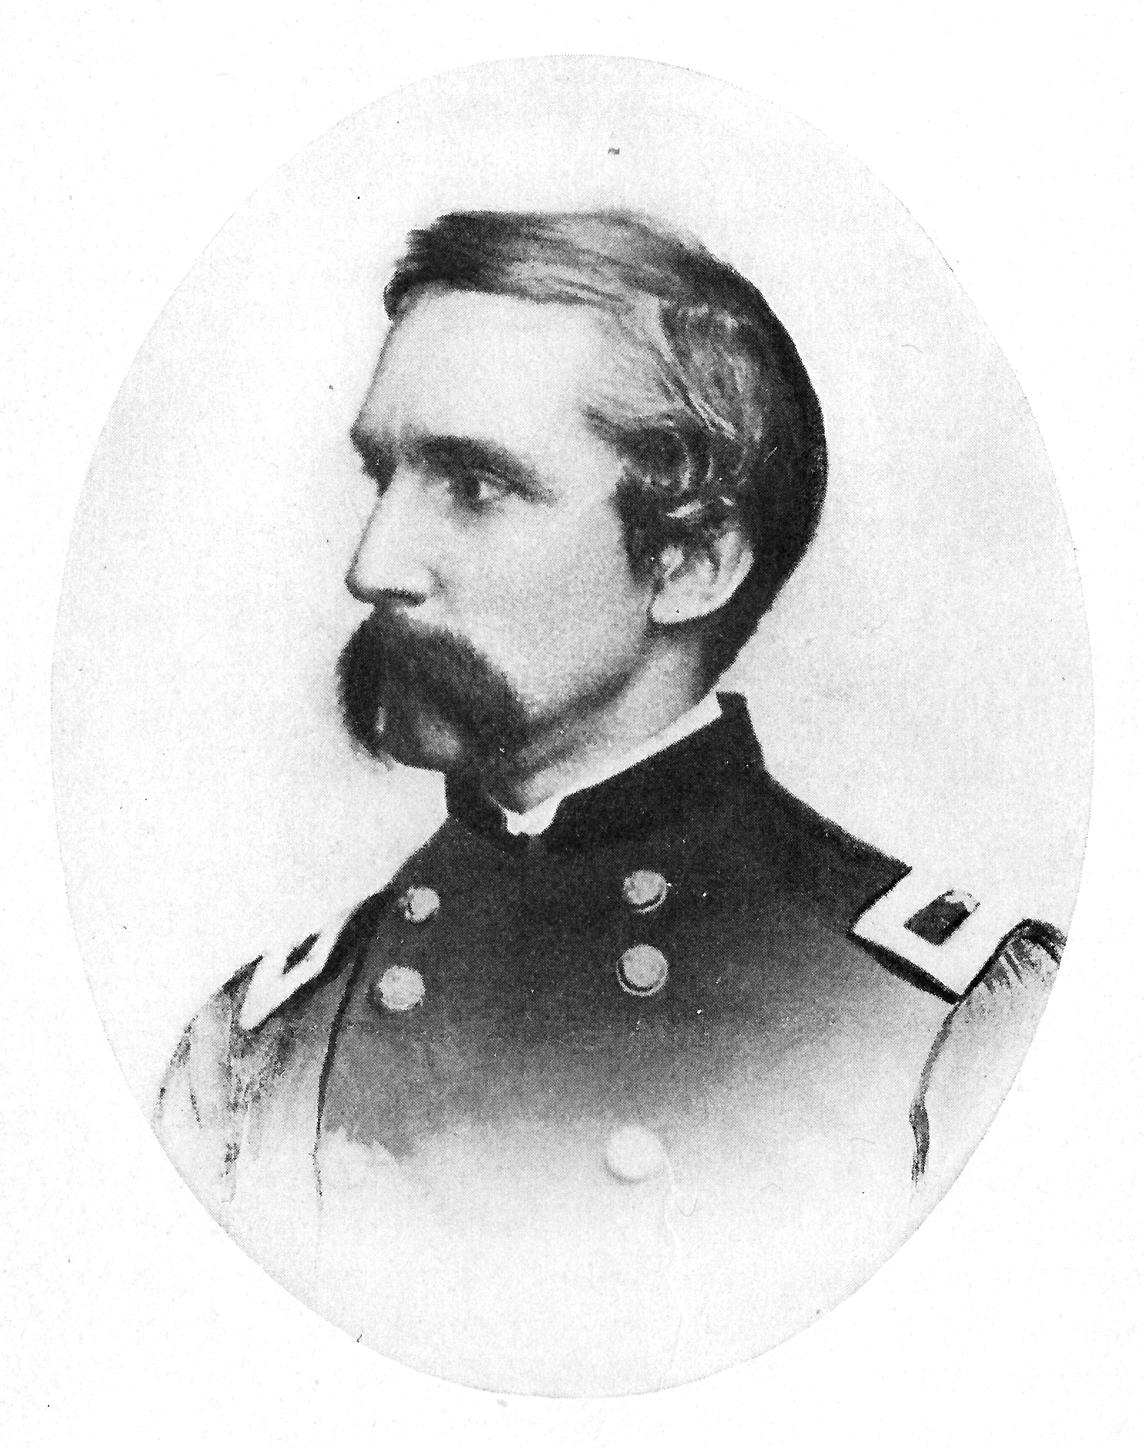 joshua l chamberlain His life is a remarkable story of perseverance, tragedy and triumph from an insecure young man with a considerable stutter who grew up in a small town in eastern maine, joshua chamberlain rose to become a major general, recipient of the medal of honor, governor of maine and president of bowdoin college.